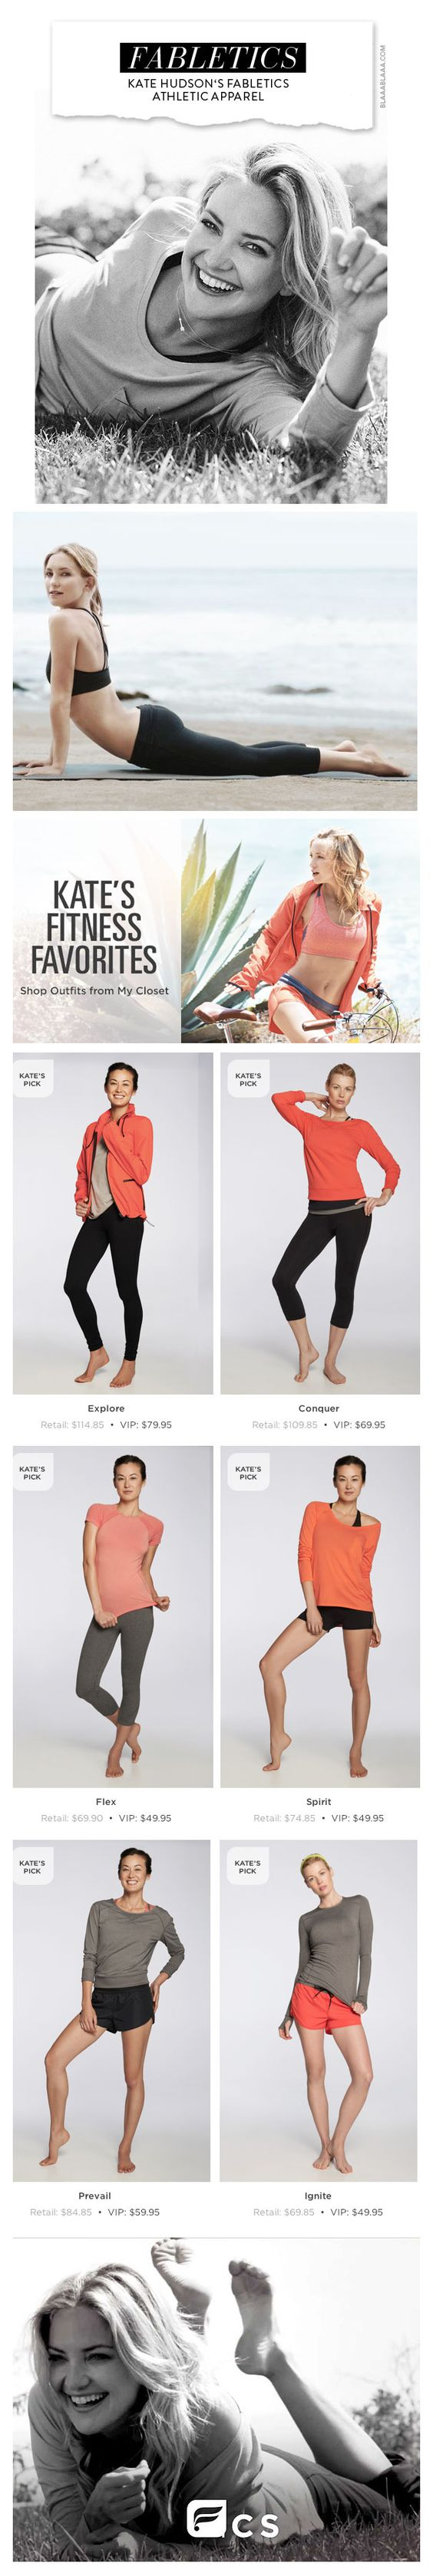 Fabletics Athletic Apparel by Kate Hudson! Save 40% off retail prices by purchasing FULL outfits starting at $49.95. This gear is top of the line and very high quality. Use my personal Fabletics Master referral link to save 20% off your first order!  http://www.fabletics.com/invite/17114549/